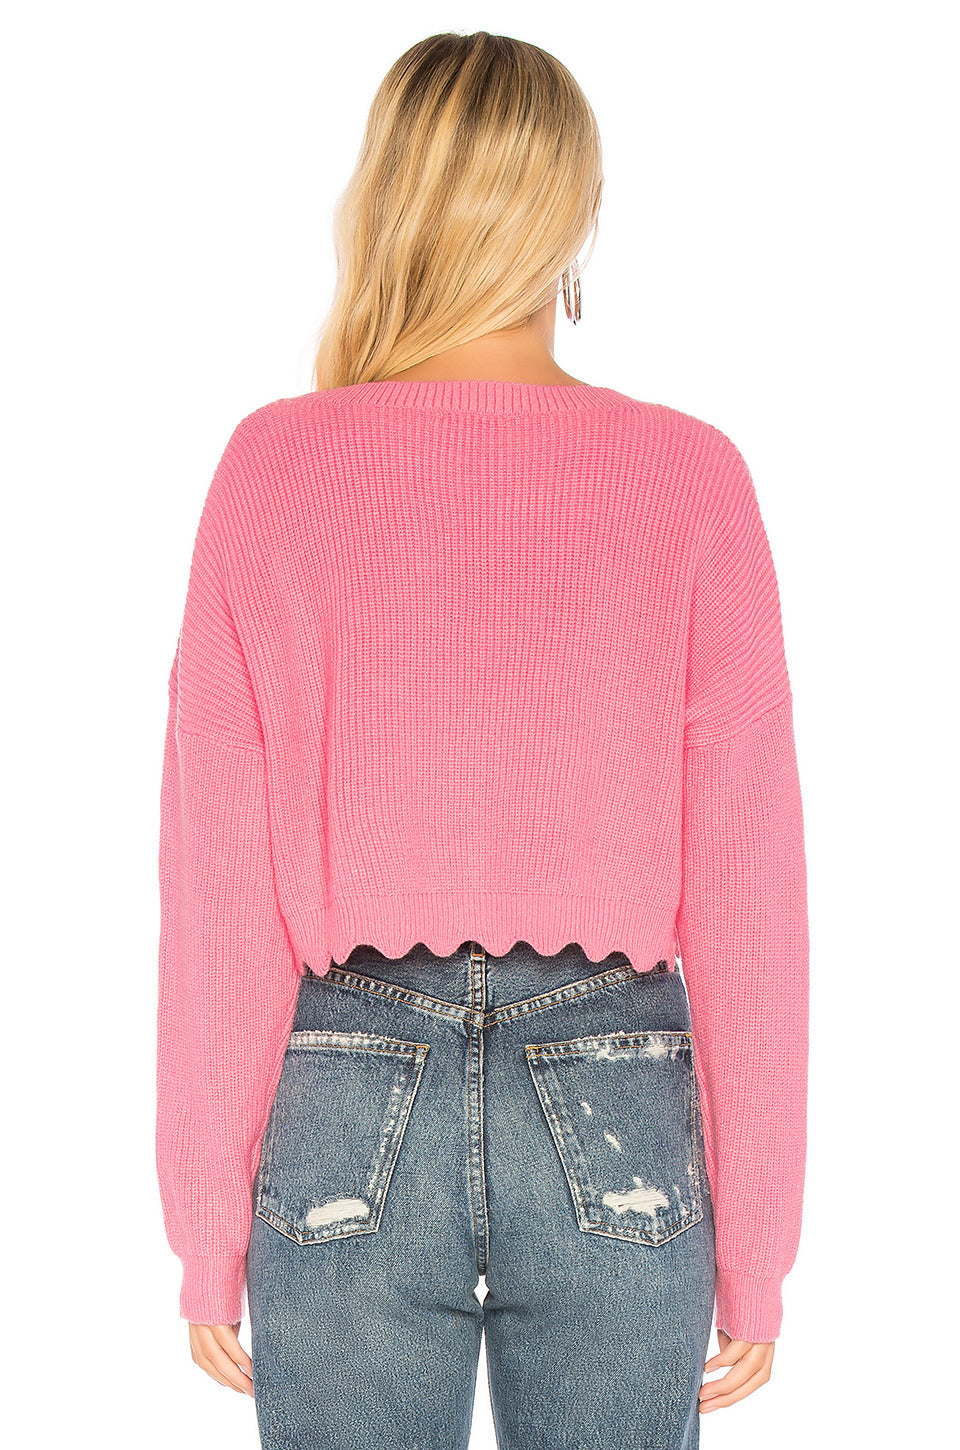 Derry Chenille Sweater